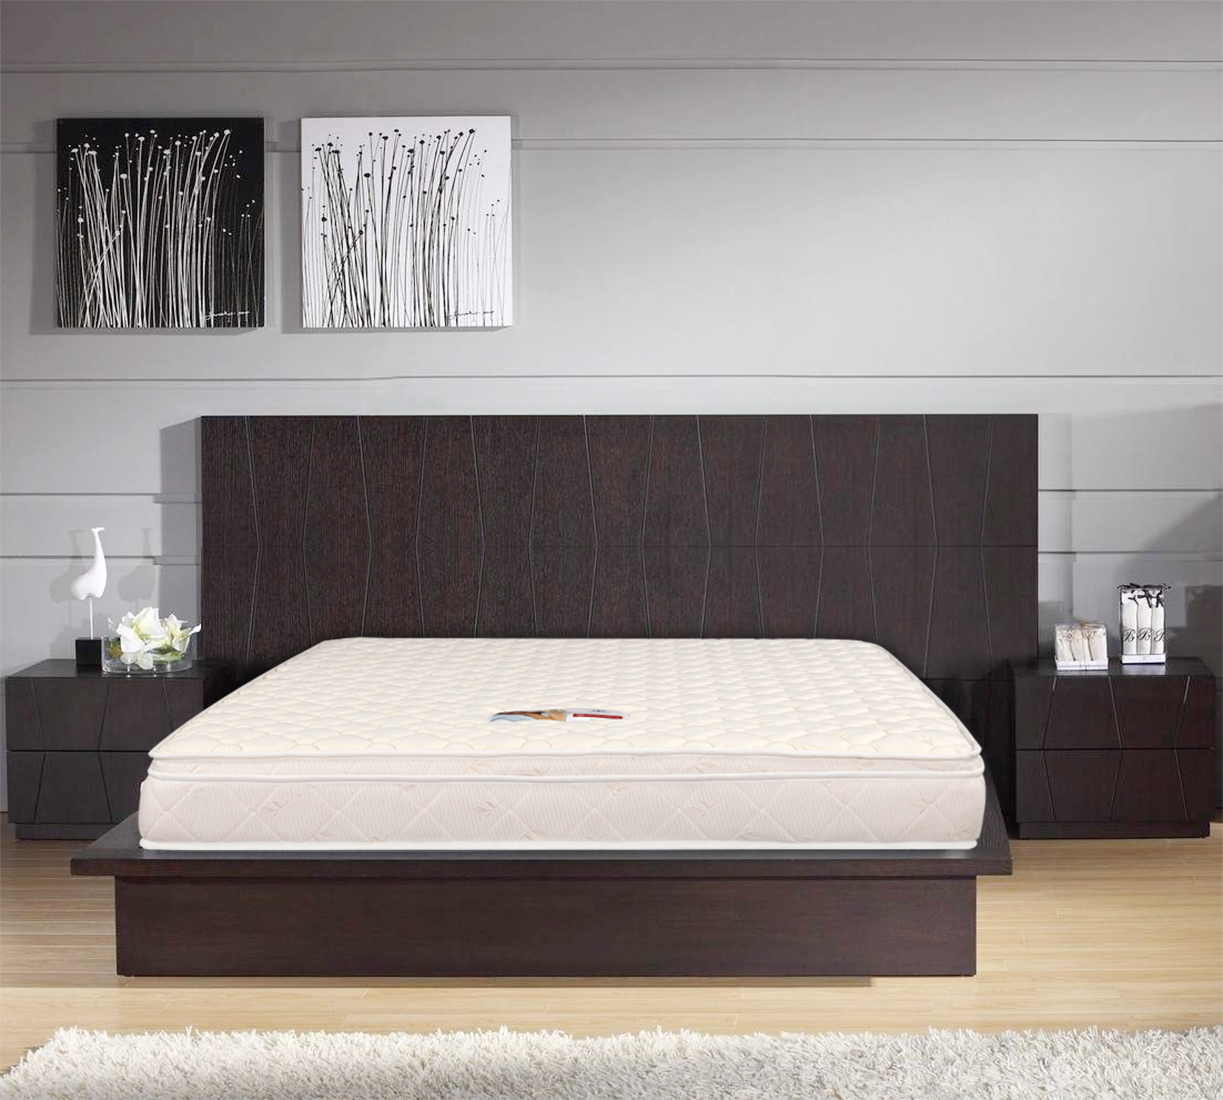 Majestic Fabric Queen Bed Mattress in Cream Colour by HomeTown